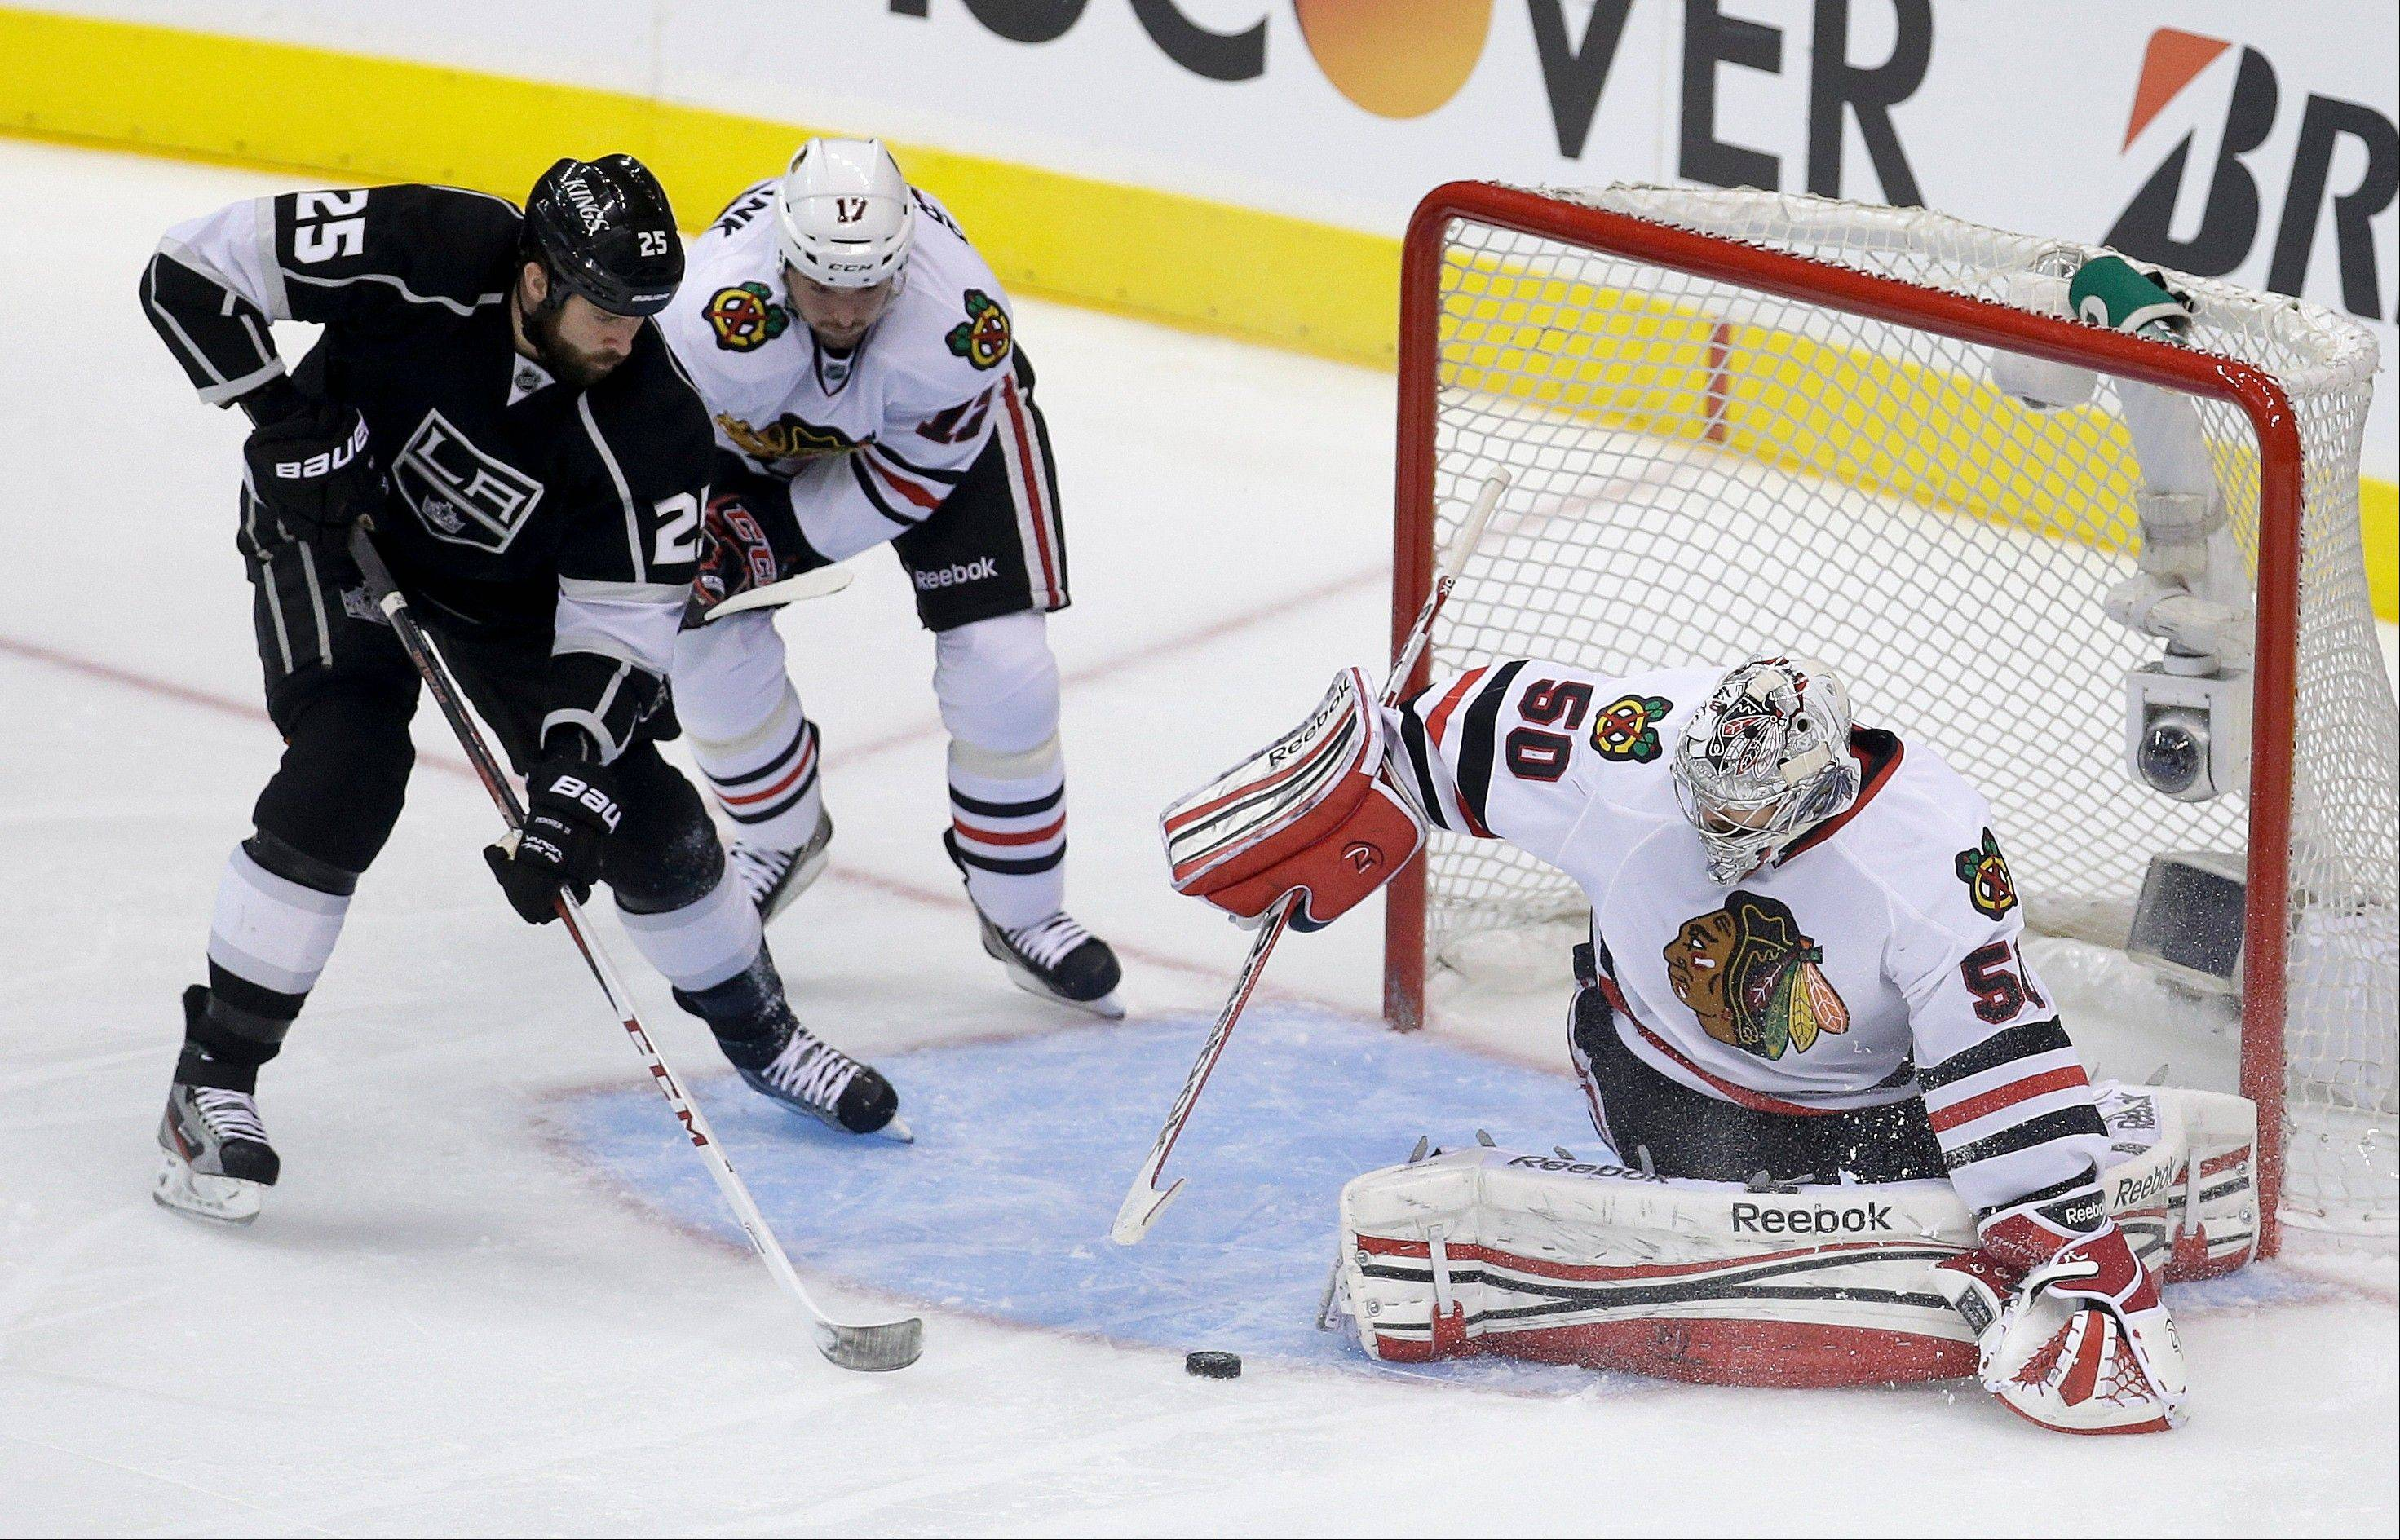 Los Angeles Kings left wing Dustin Penner, left, scores past Chicago Blackhawks goalie Corey Crawford, right, and Blackhawks' Sheldon Brookbank during the second period in Game 4 of the NHL hockey Stanley Cup playoffs Western Conference finals, in Los Angeles on Thursday, June 6, 2013.